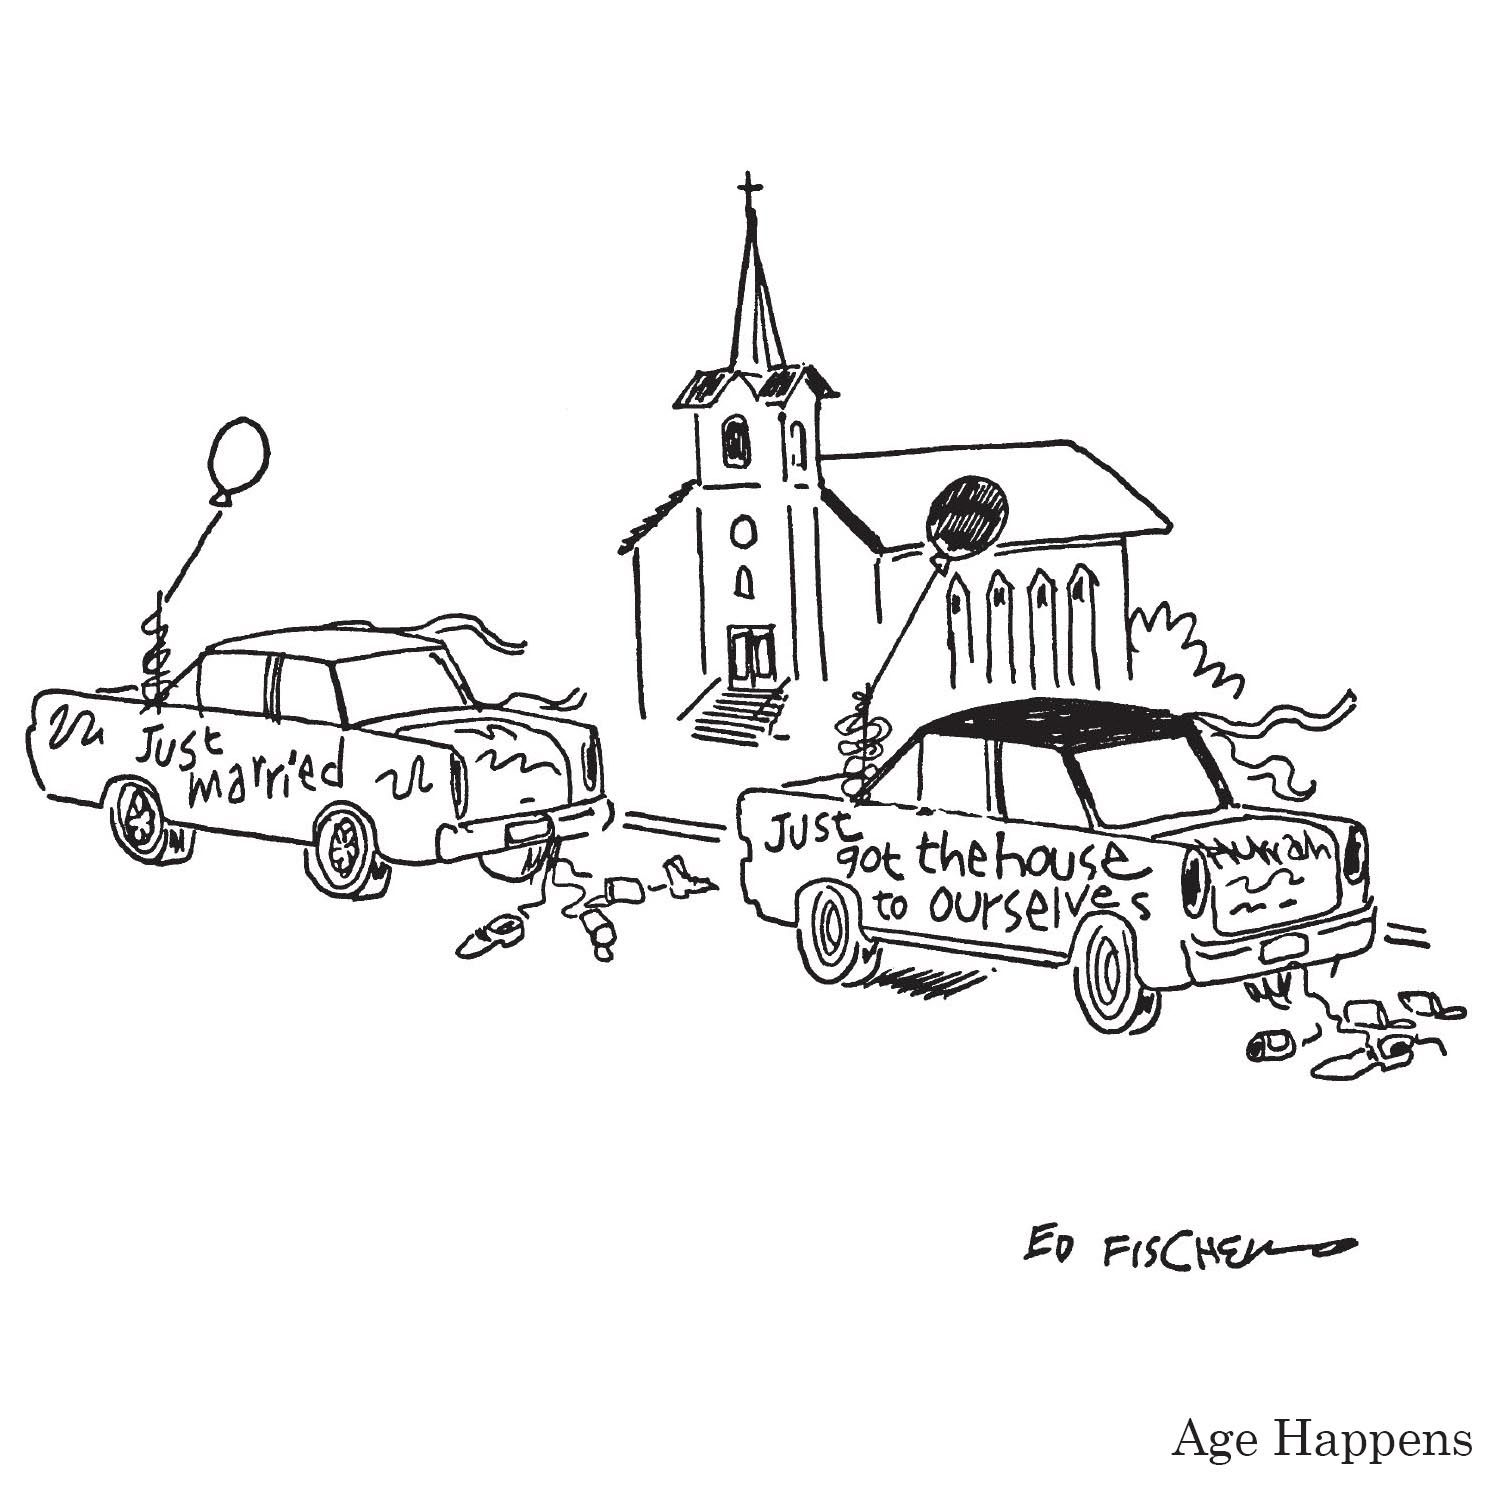 "Just Married Quotes Just Married""  A Cartooned Fischer From Age Happens Available"